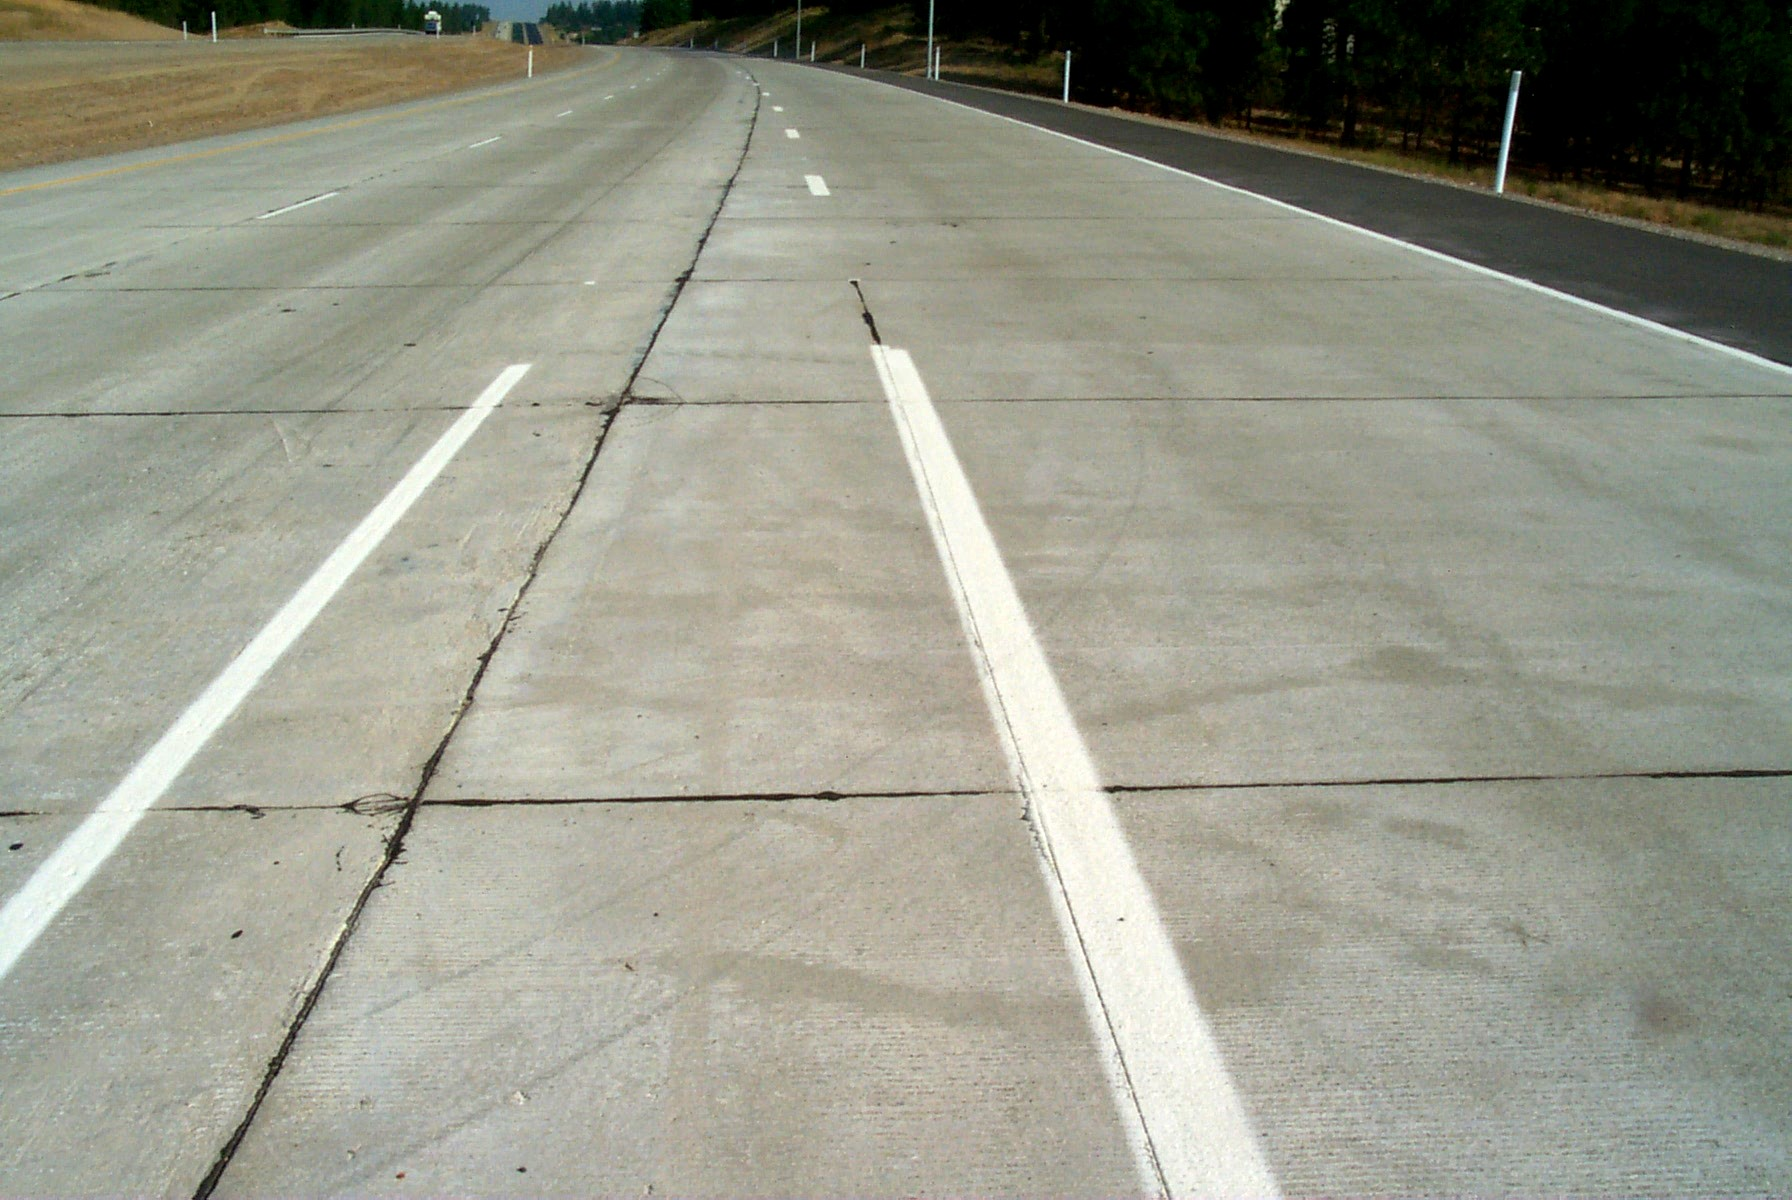 Joints sealed with hot-pour liquid sealant on a freeway on-ramp (normally, joints should coincide with lane divisions as they do near the horizon of this photograph)